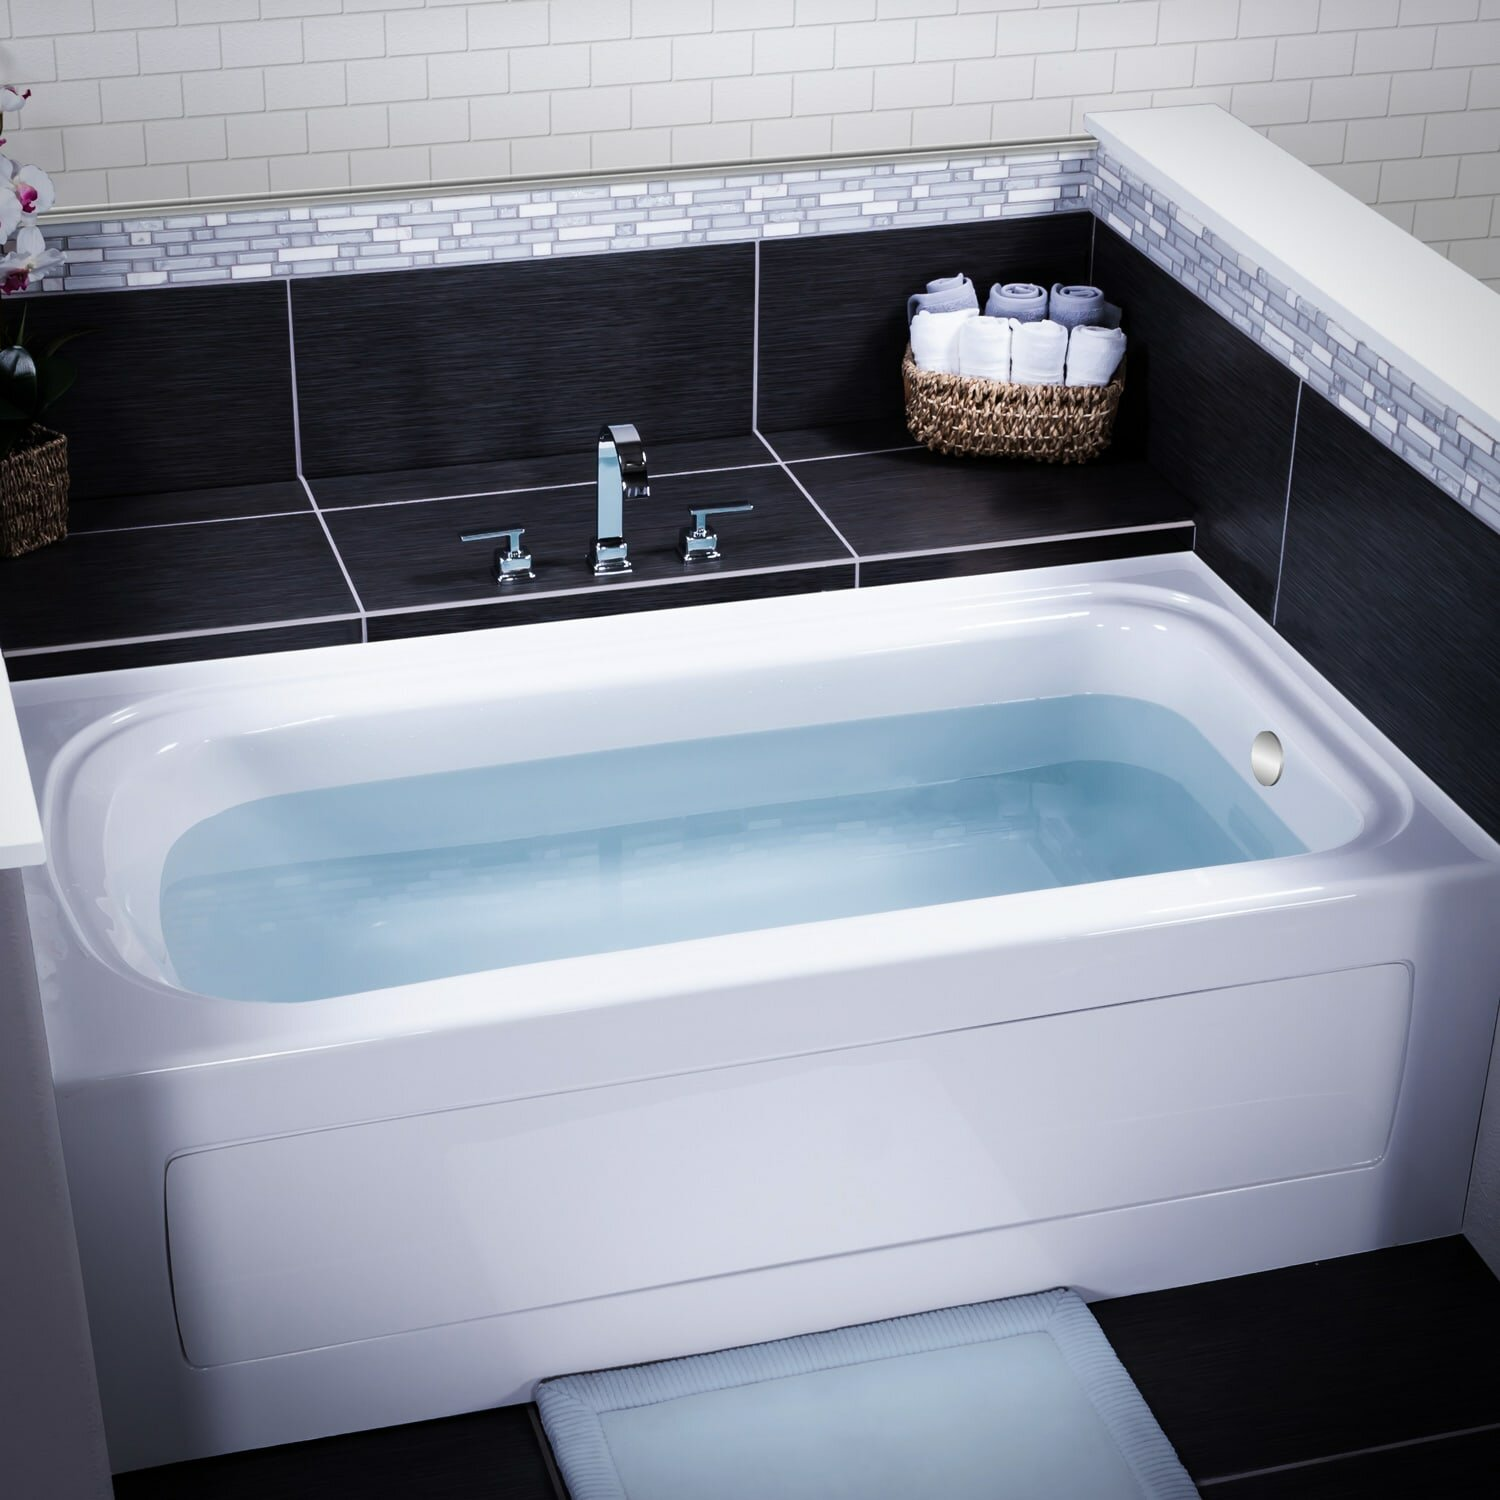 Modern 60 X 36 Soaking Tub Adornment - Bathtub Ideas - dilata.info